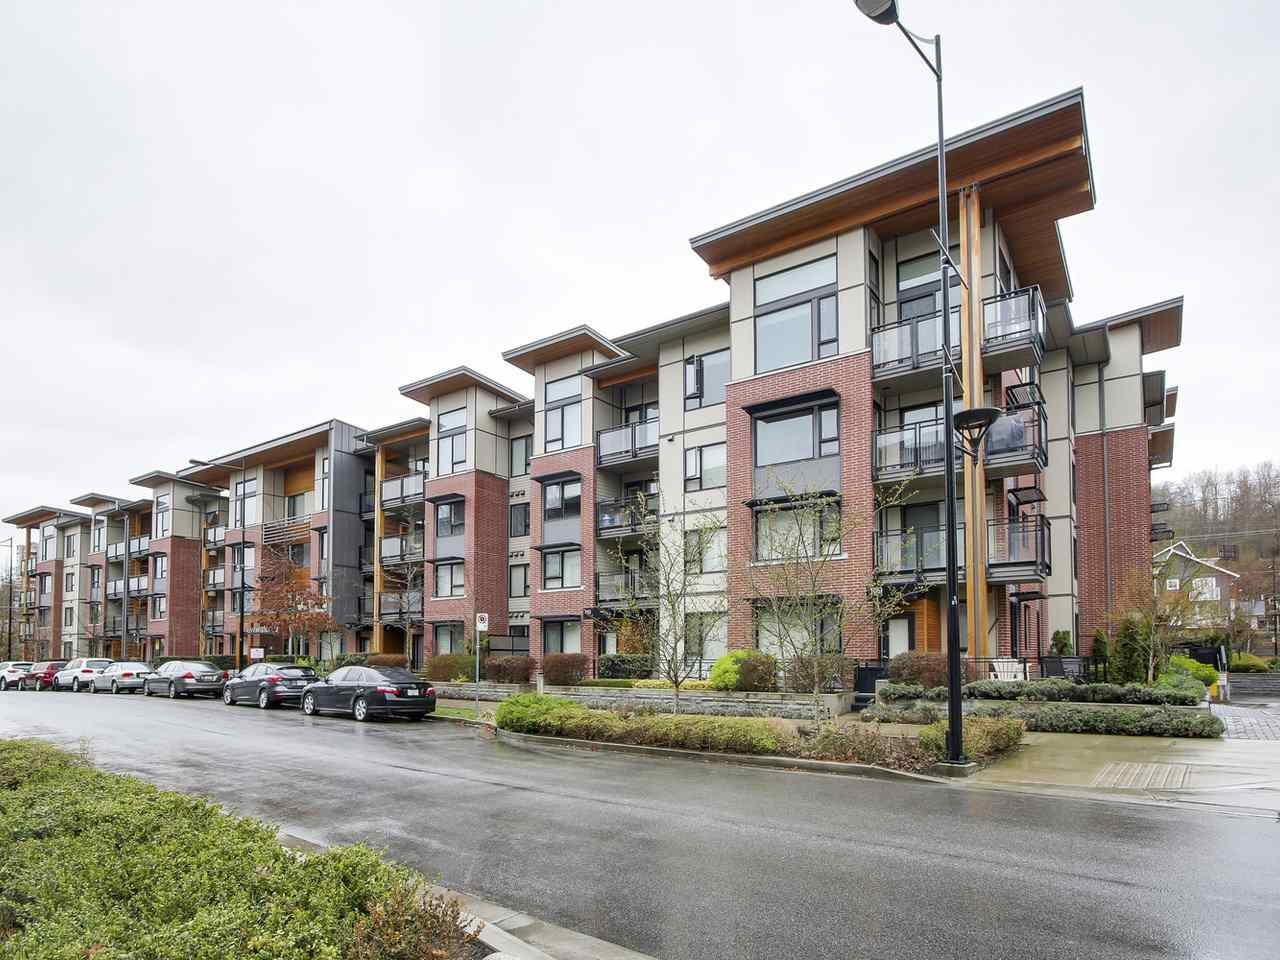 221 3133 RIVERWALK AVENUE - Champlain Heights Apartment/Condo for sale, 2 Bedrooms (R2156847) #1